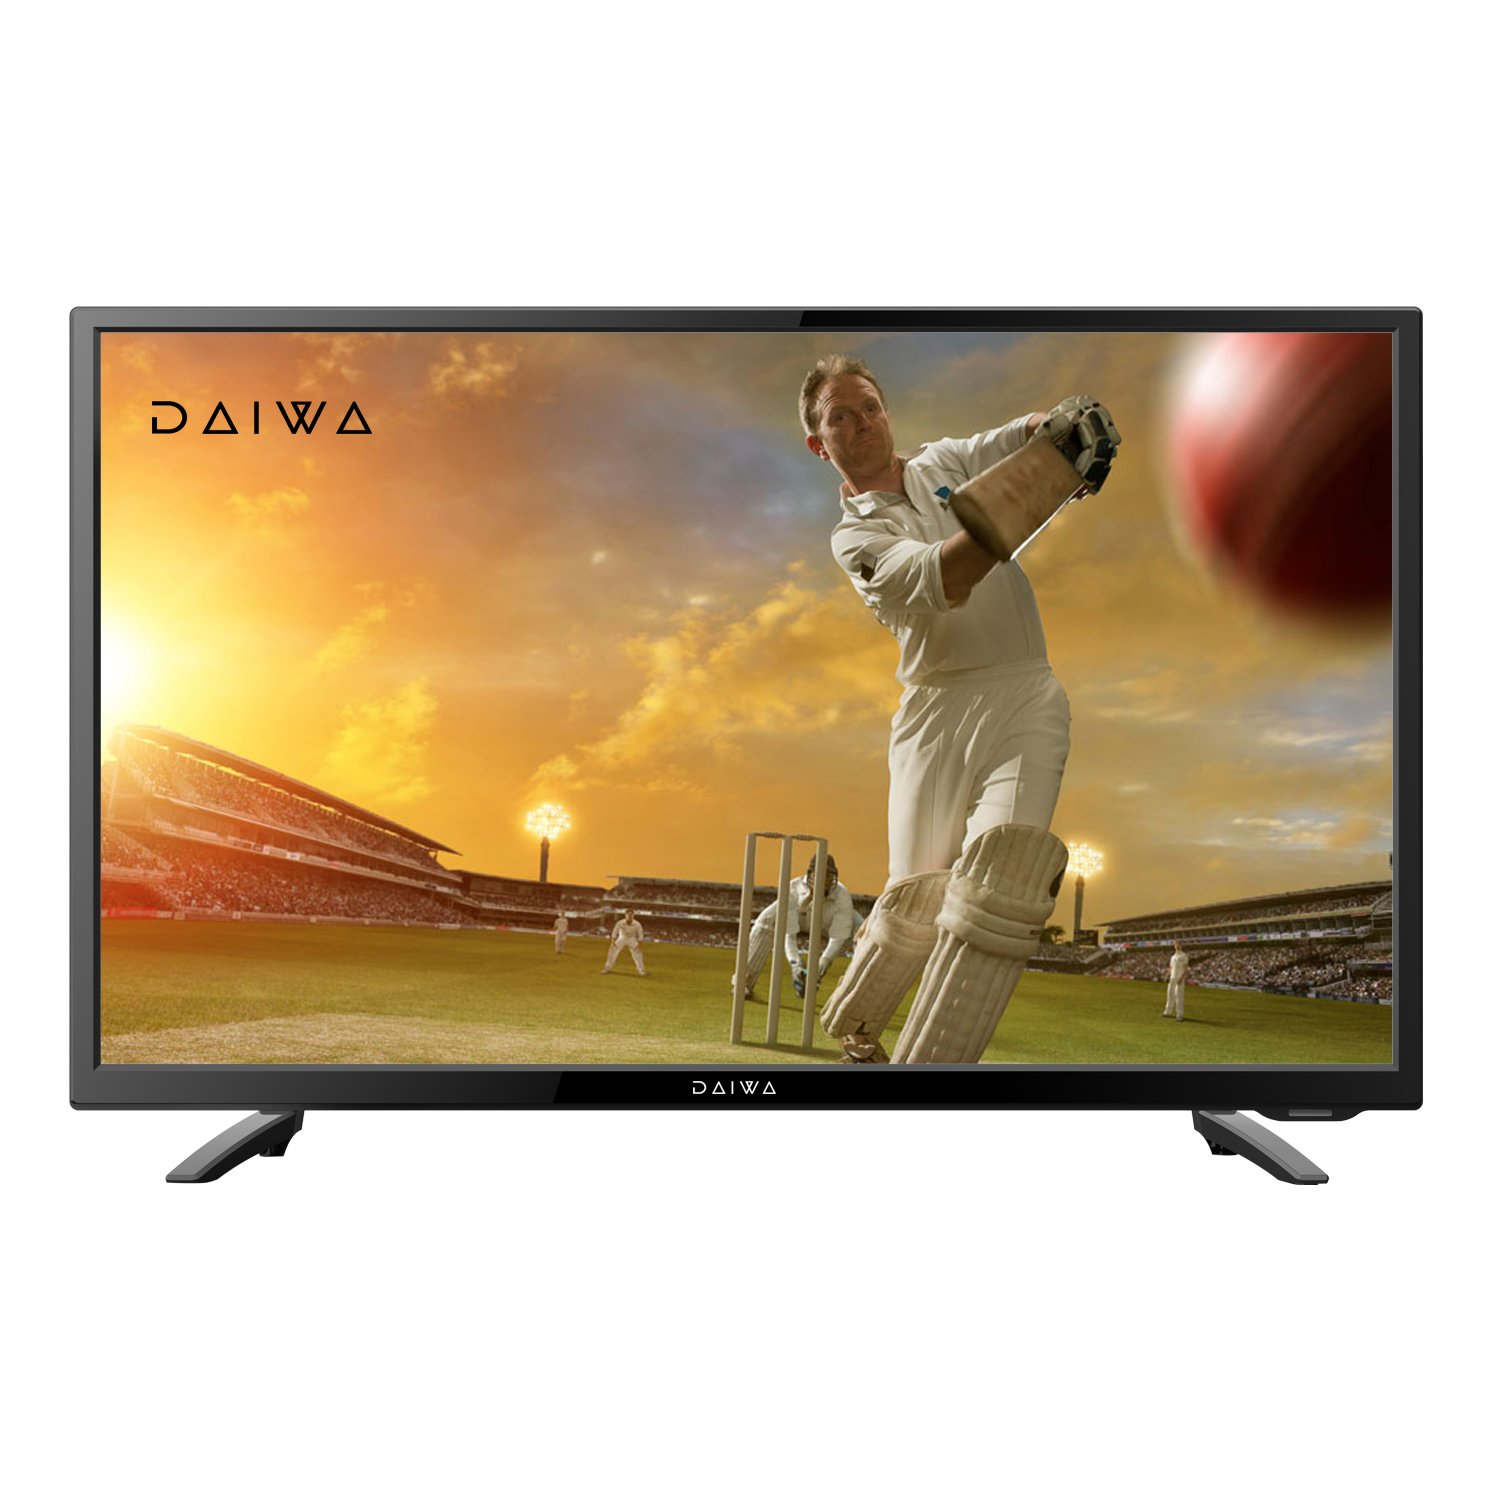 Daiwa D32C1 31.5 Inch HD LED TV